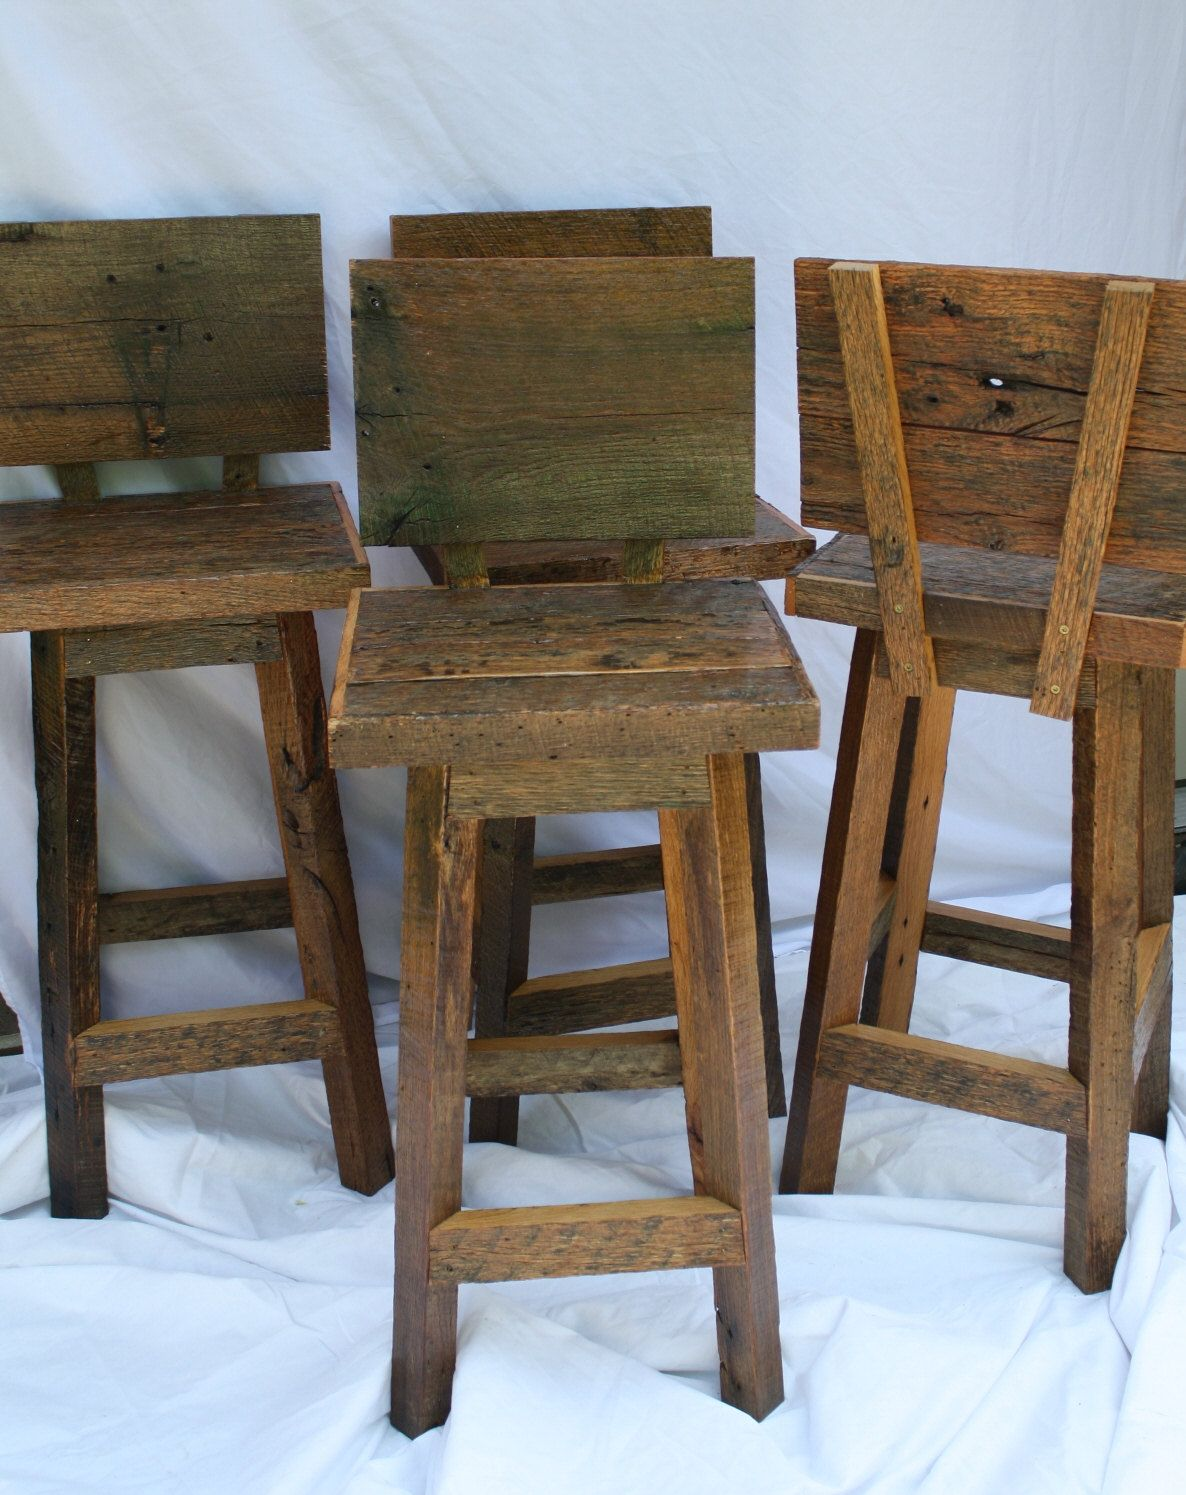 Handmade Bar Stools With Backs With 24 Seats Outdoor Bar Stools Wooden Bar Stools Bar Chairs Diy